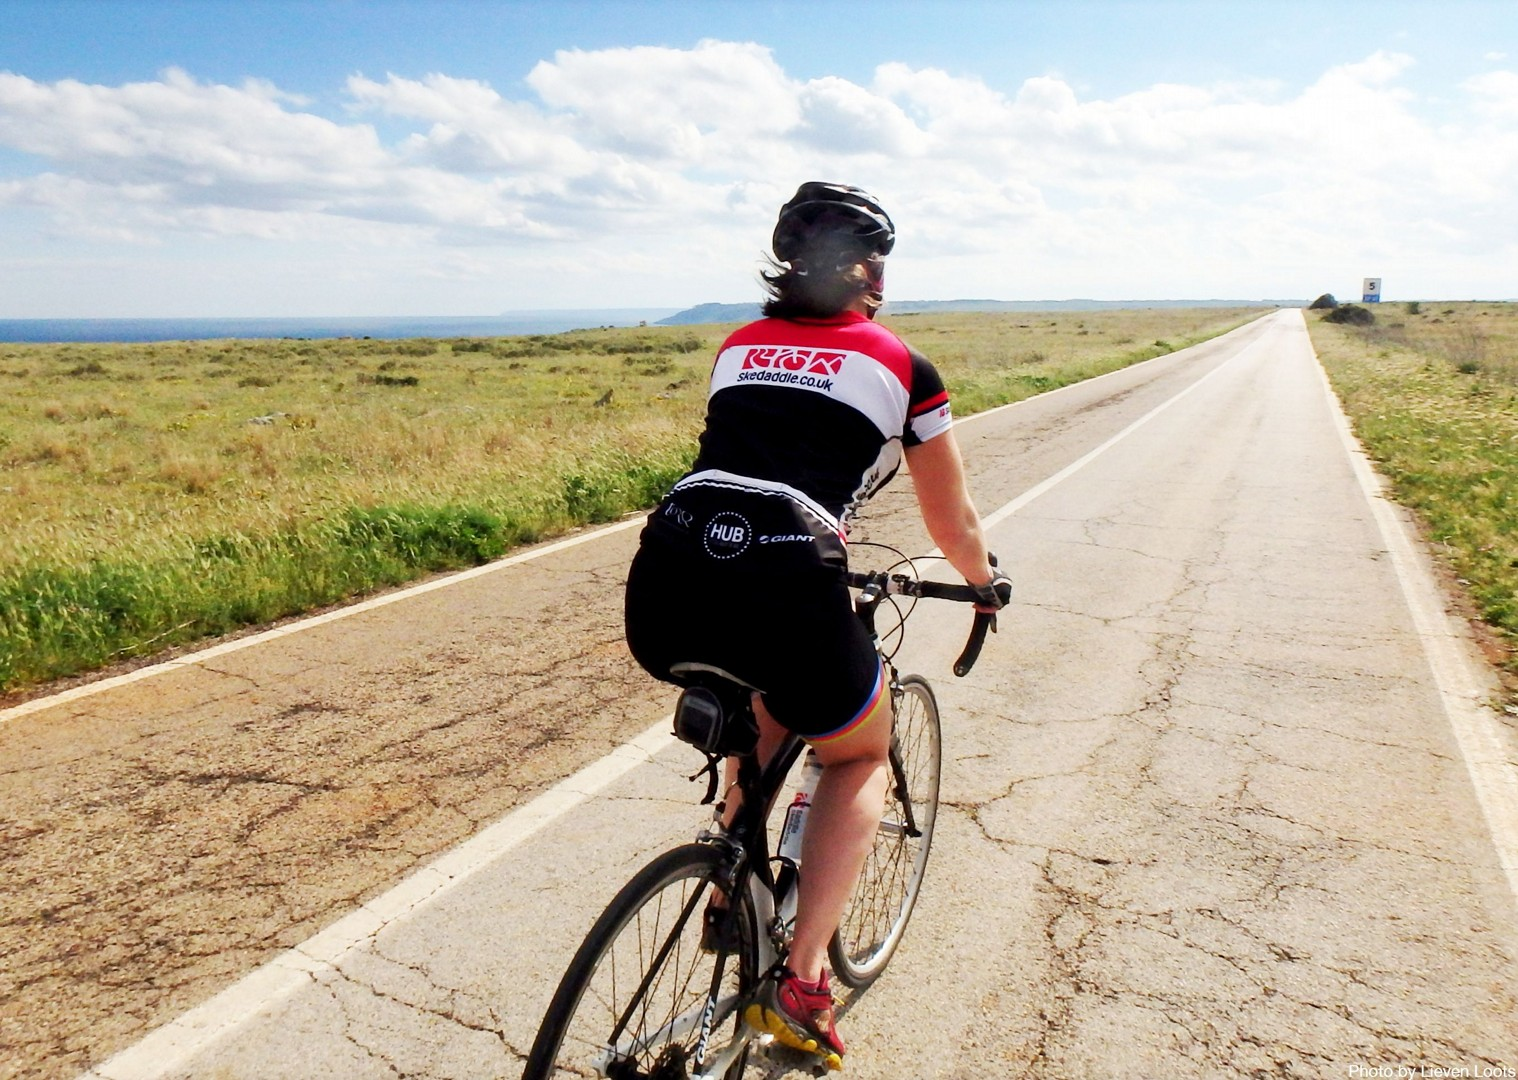 self-guided-road-cycling-holiday.jpg - Italy - Puglia - The Heel of Italy - Self-Guided Road Cycling Holiday - Italia Road Cycling